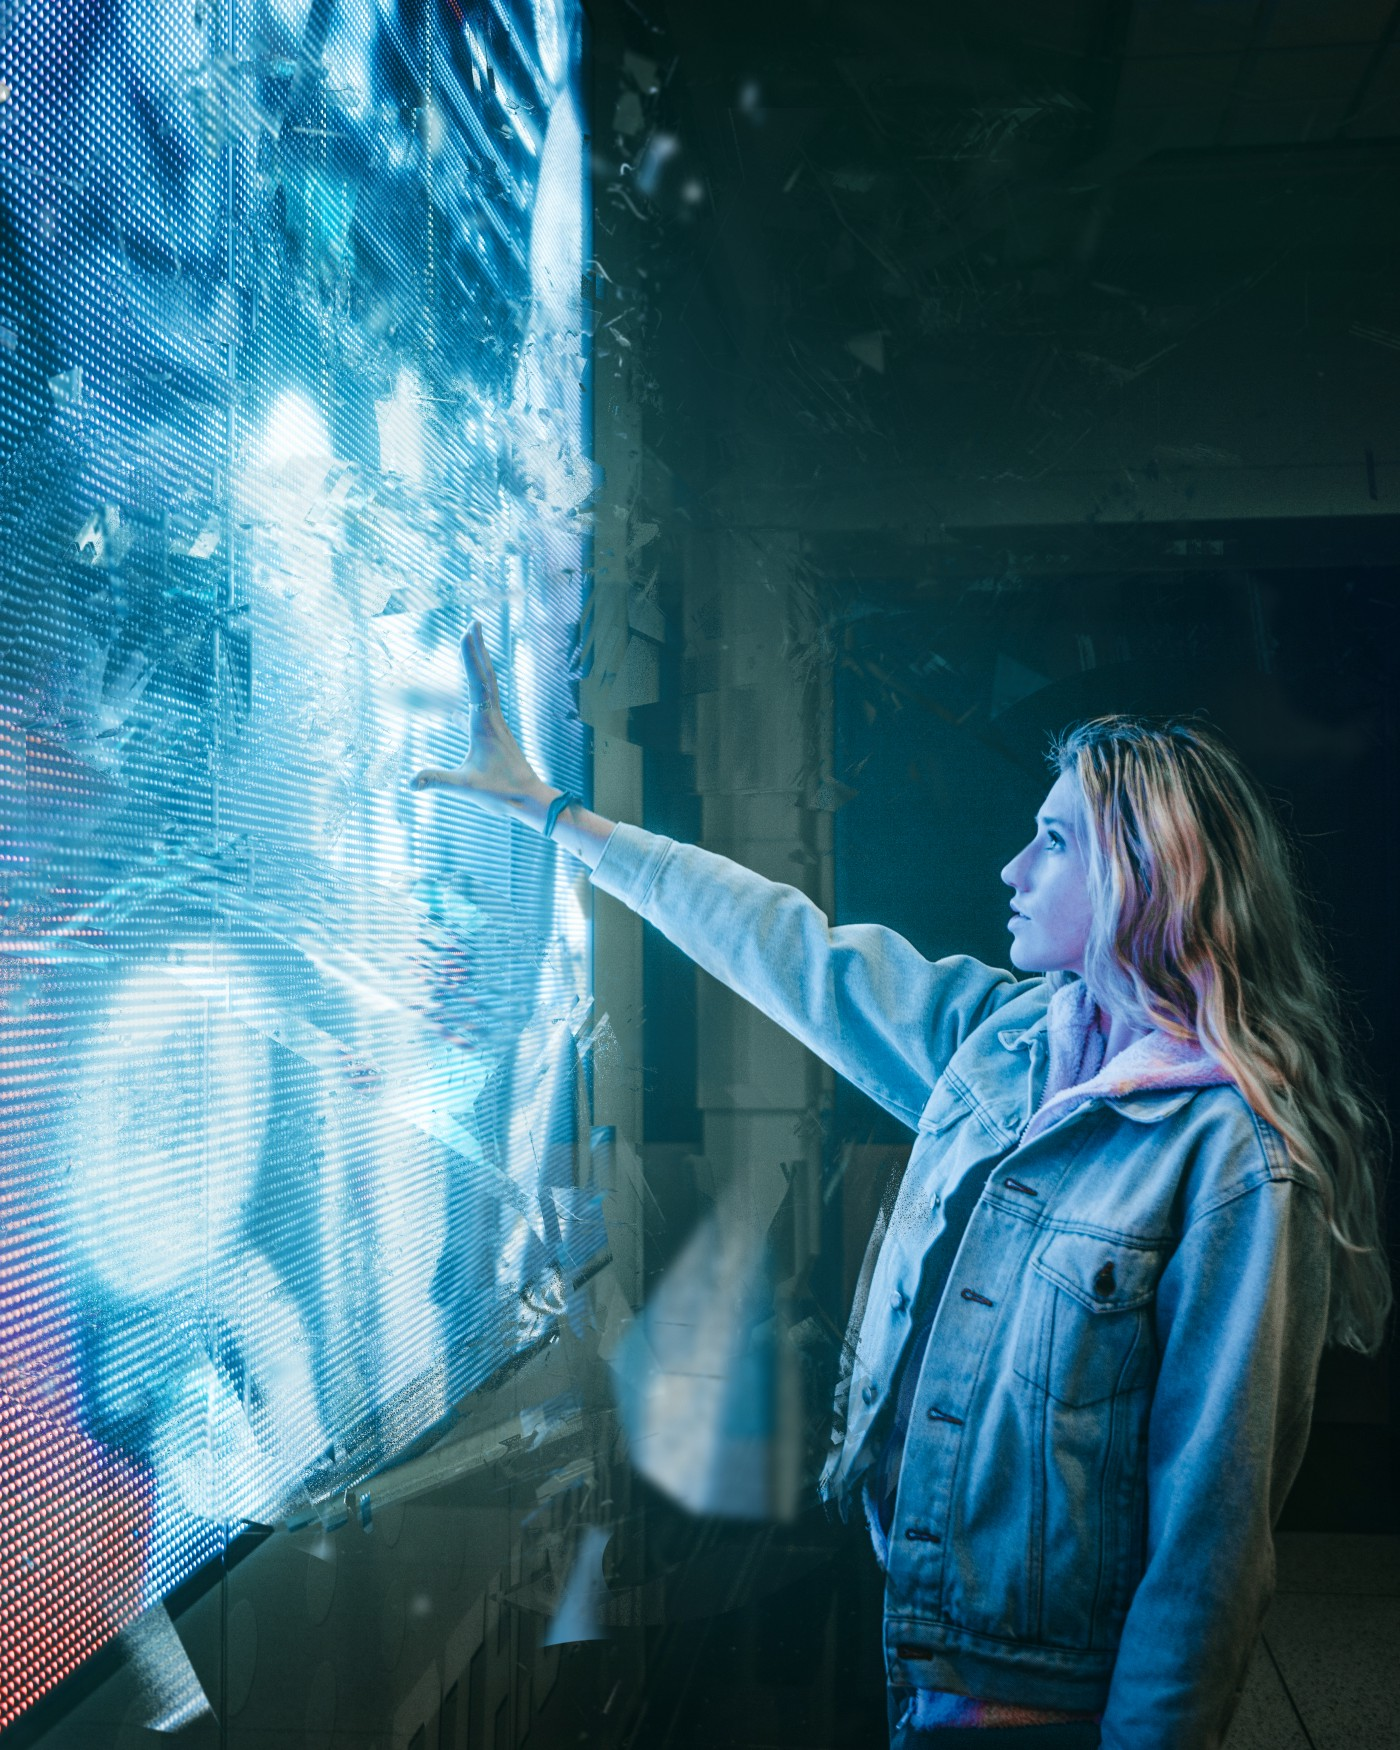 Futuristic image of a woman touching a touch-screen or hologram computer, wall sized, big, brightly lit, digital. She's wearing a blue jean jacket, it's a powerful contrast. Future tech, artificial intelligence, science fiction, science fact, futurism, future.